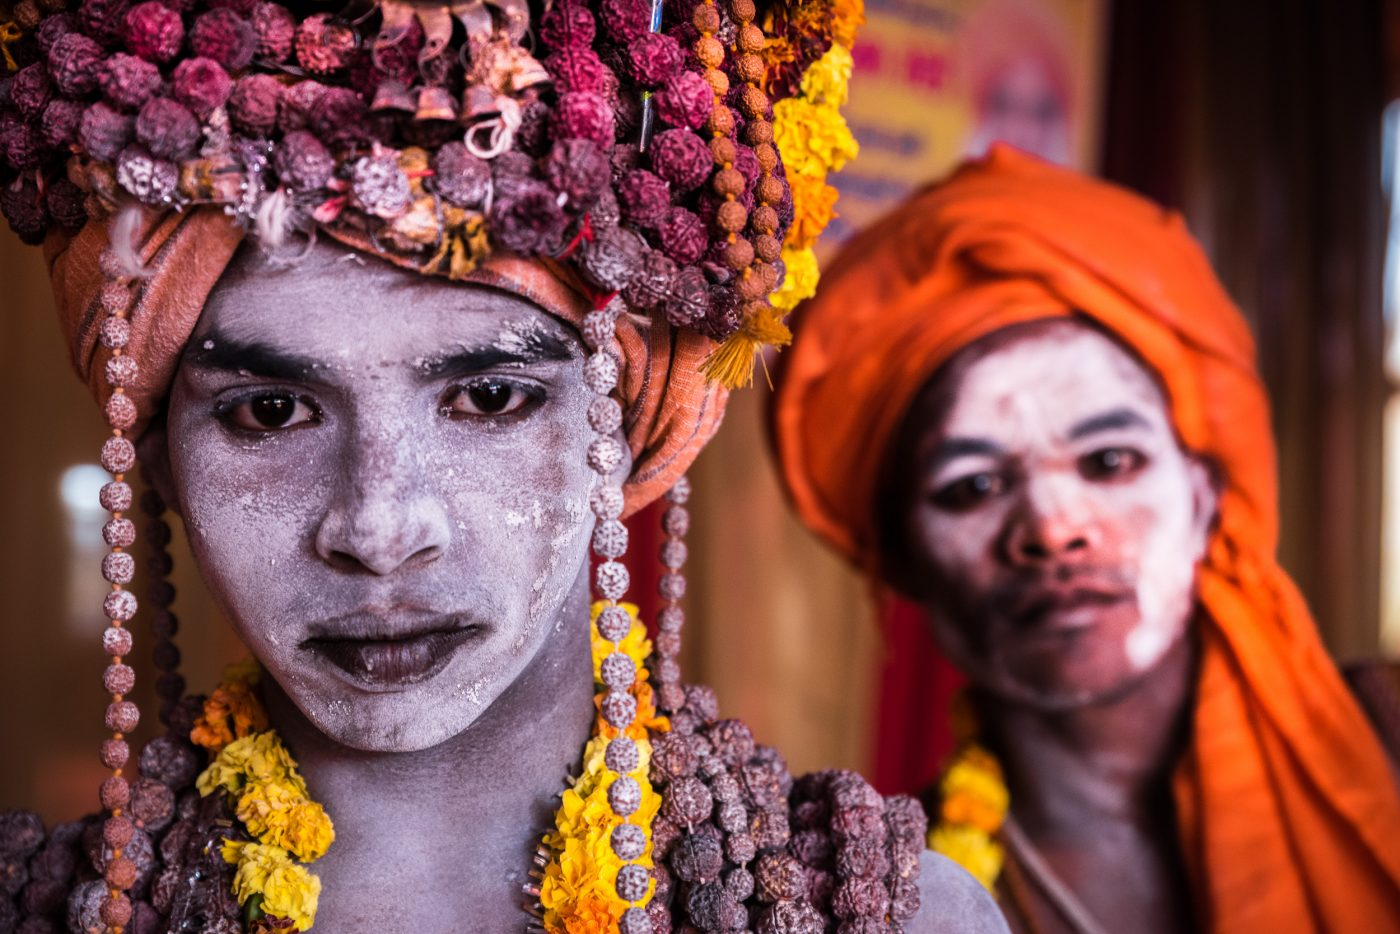 Two young Naga baba's pose in front of the camera, Kumbh mela, India.